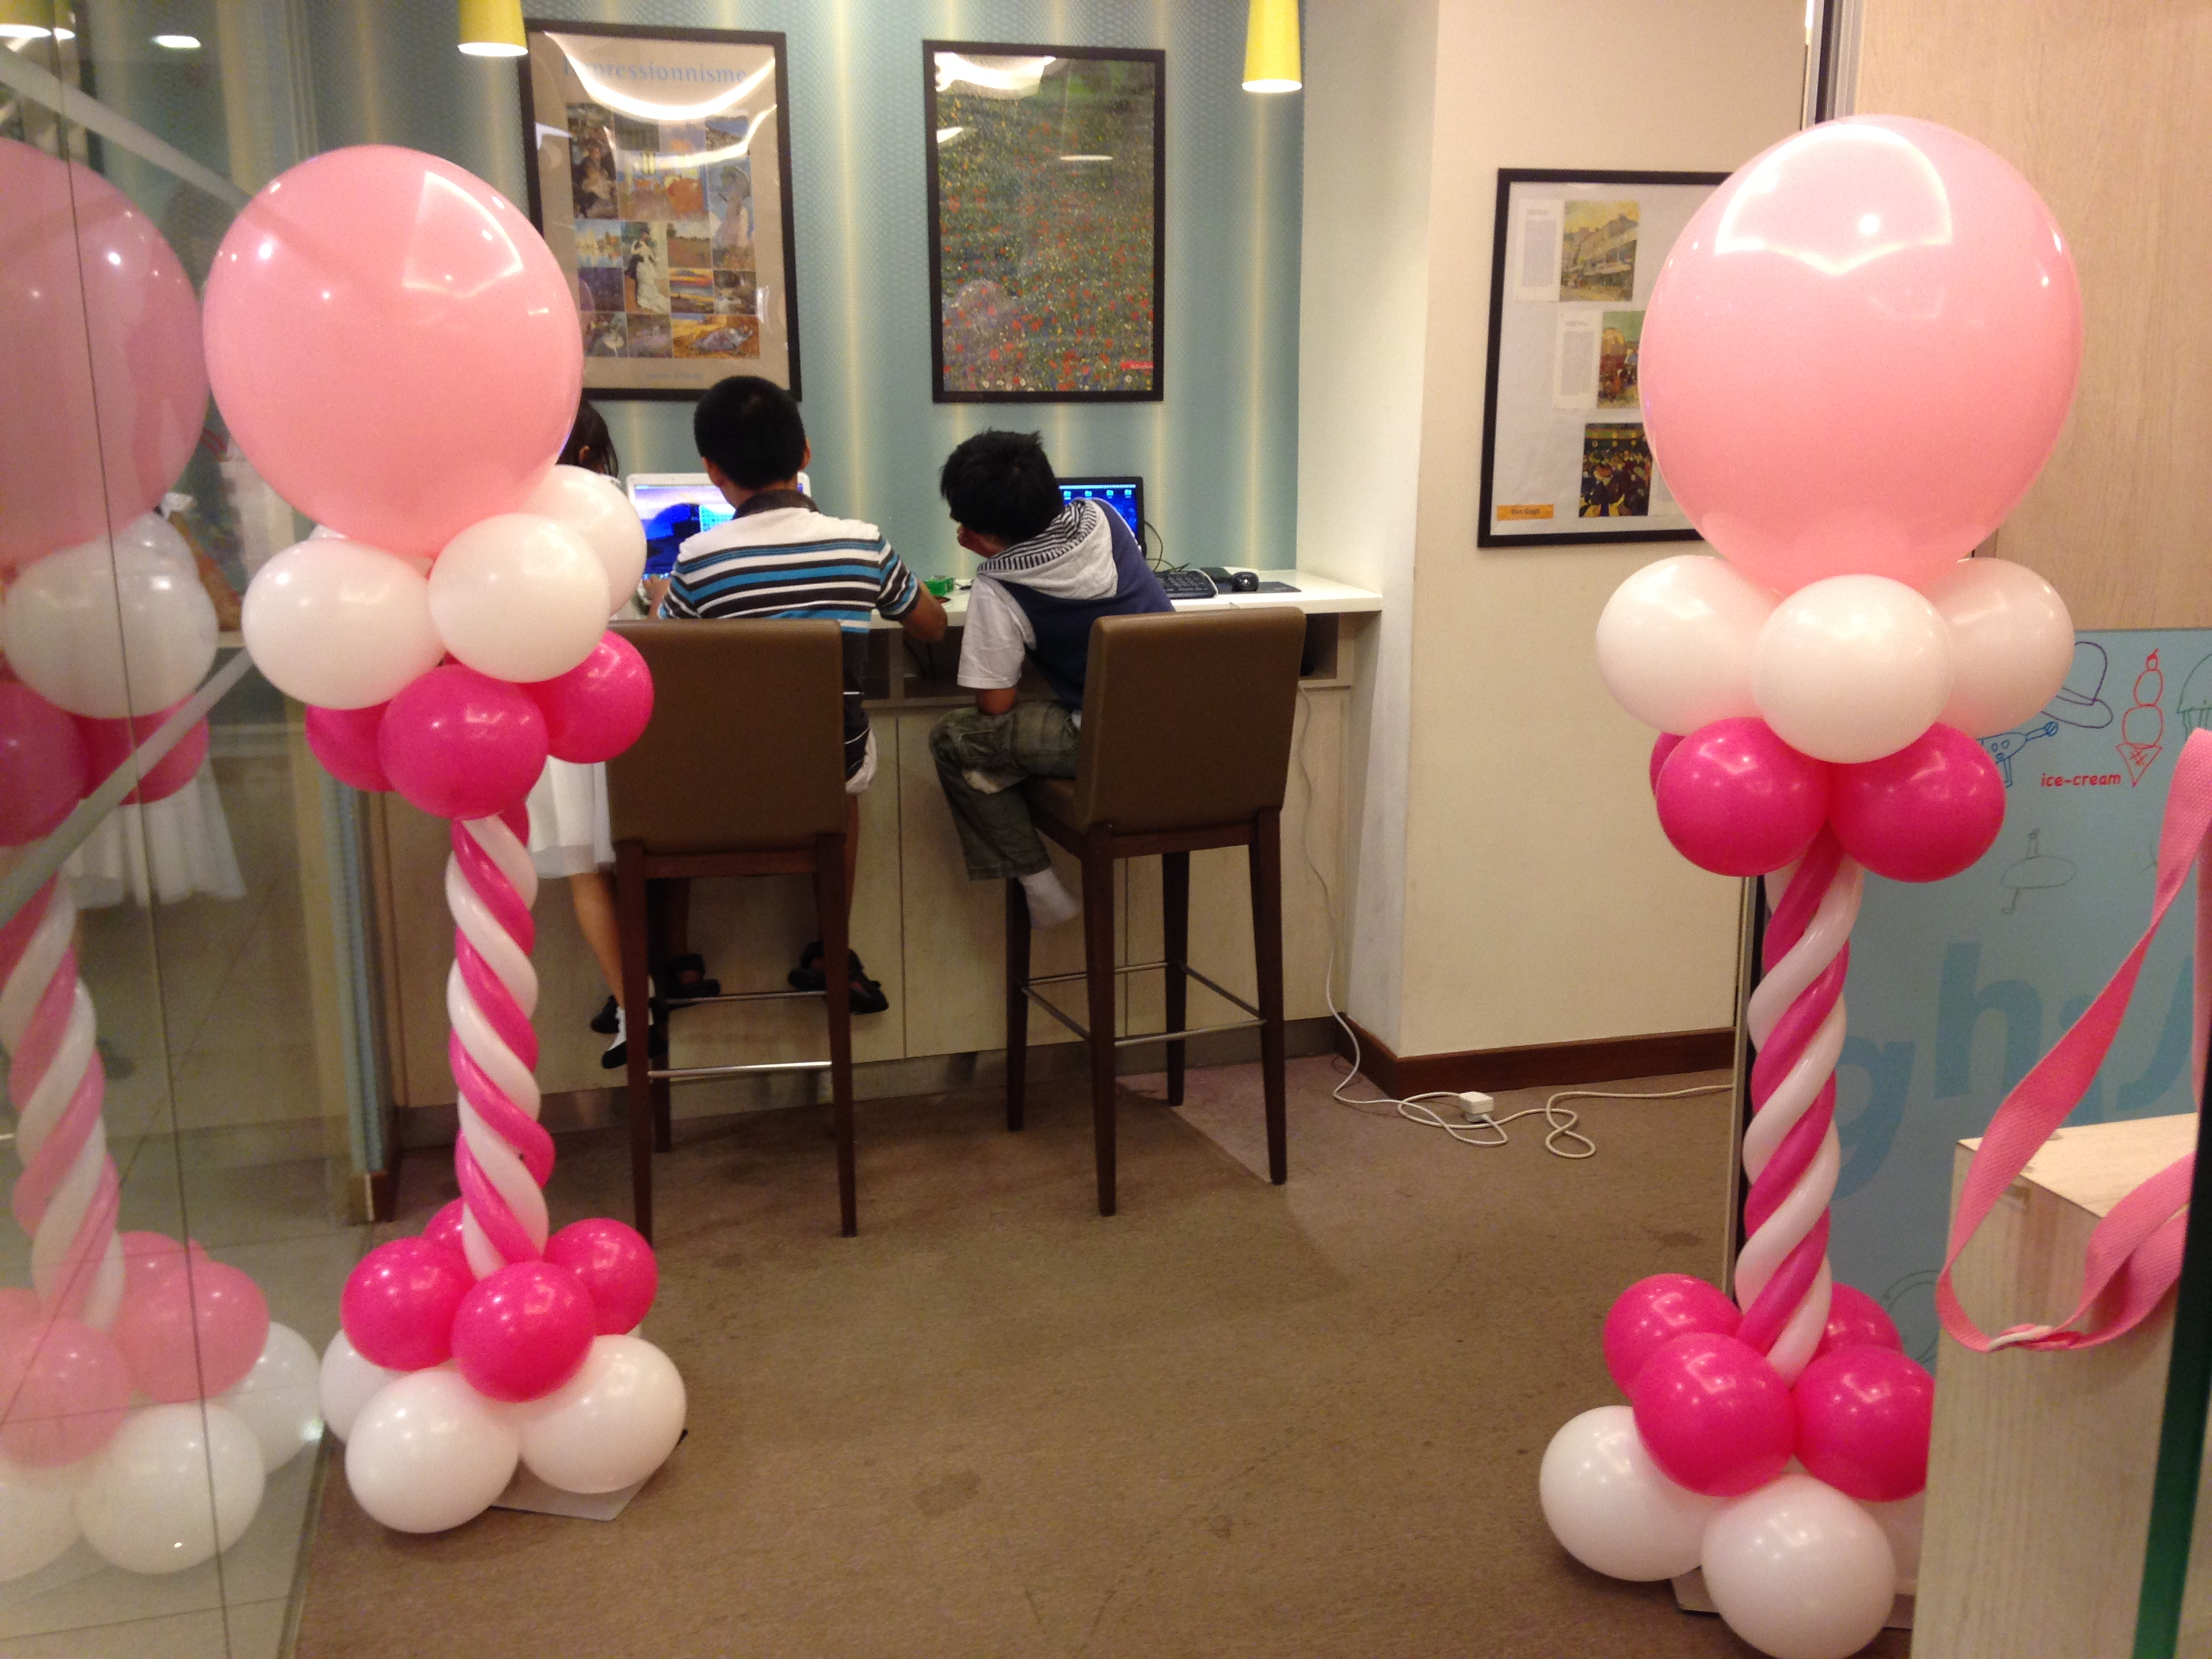 Classic Balloon Columns - Choose your own colours!